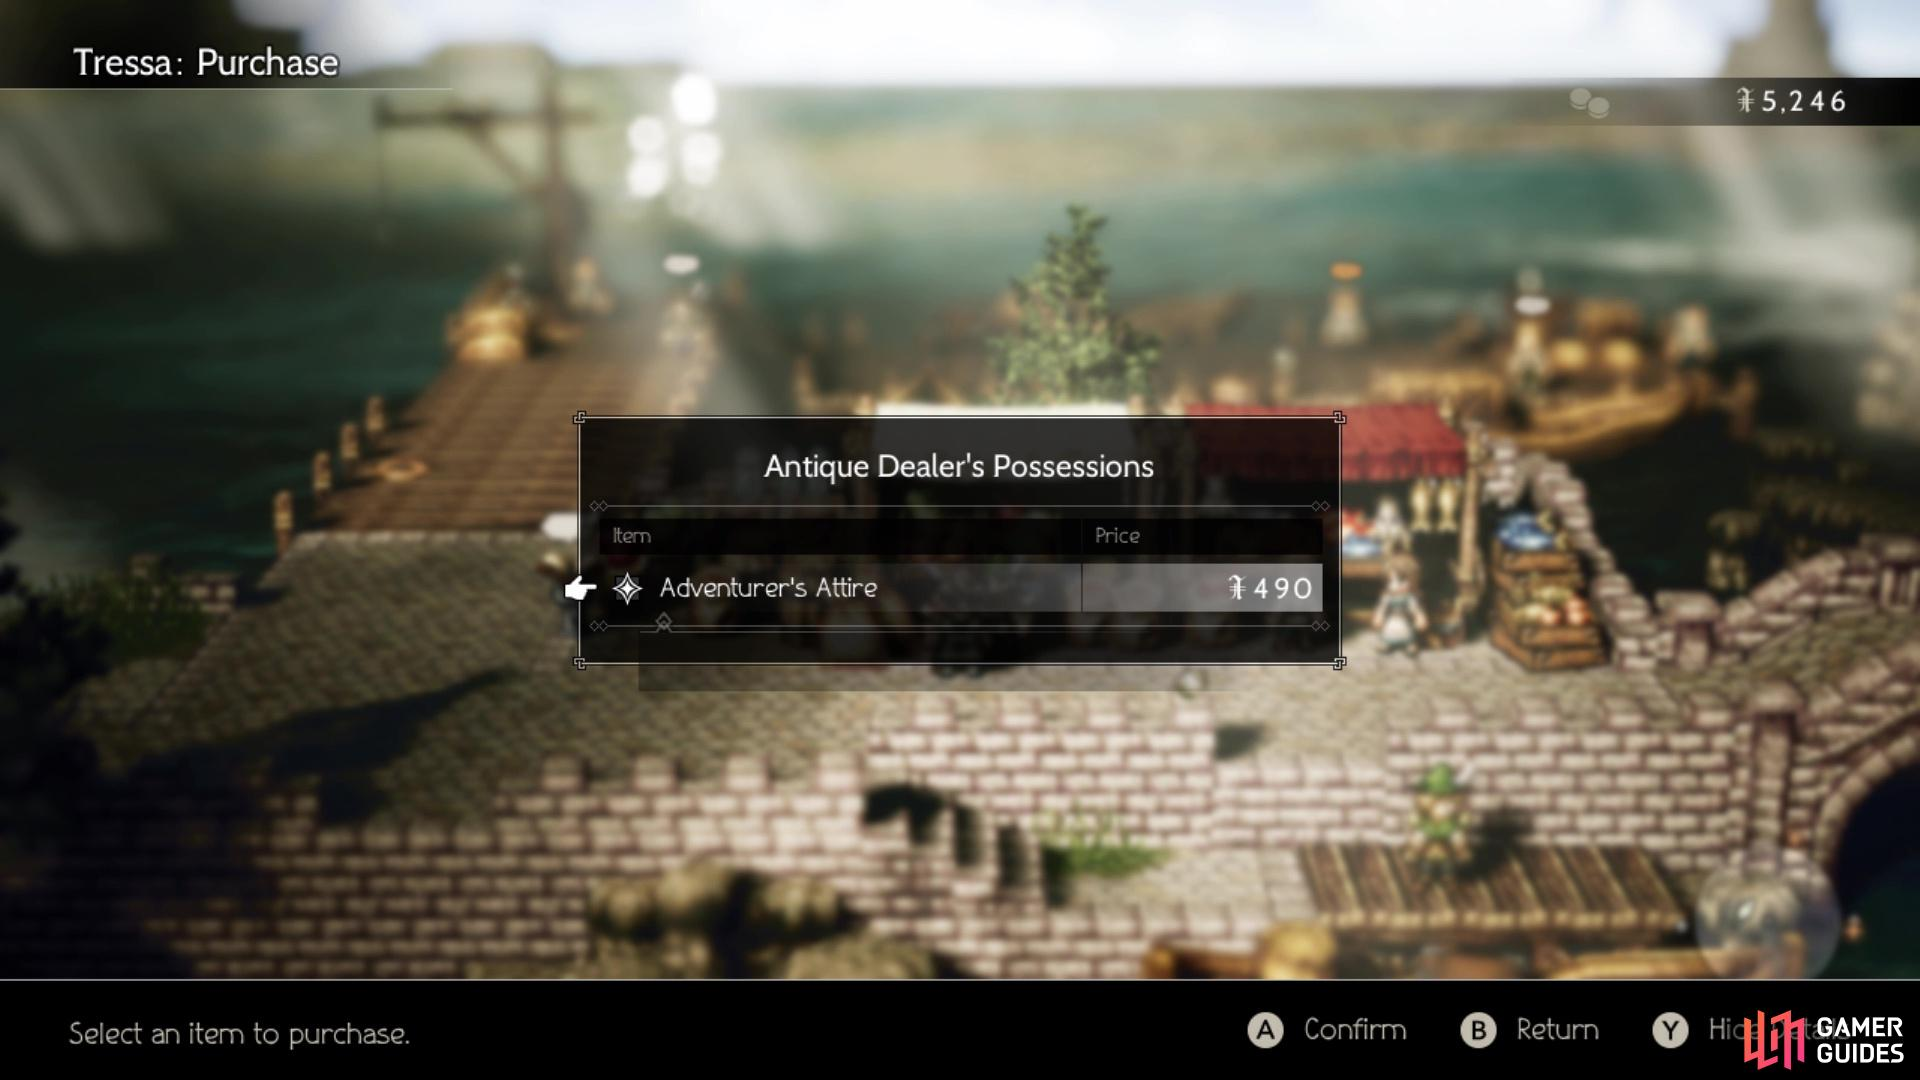 You can buy the Adventurer's Attire from the Antique Dealer for Le Mann